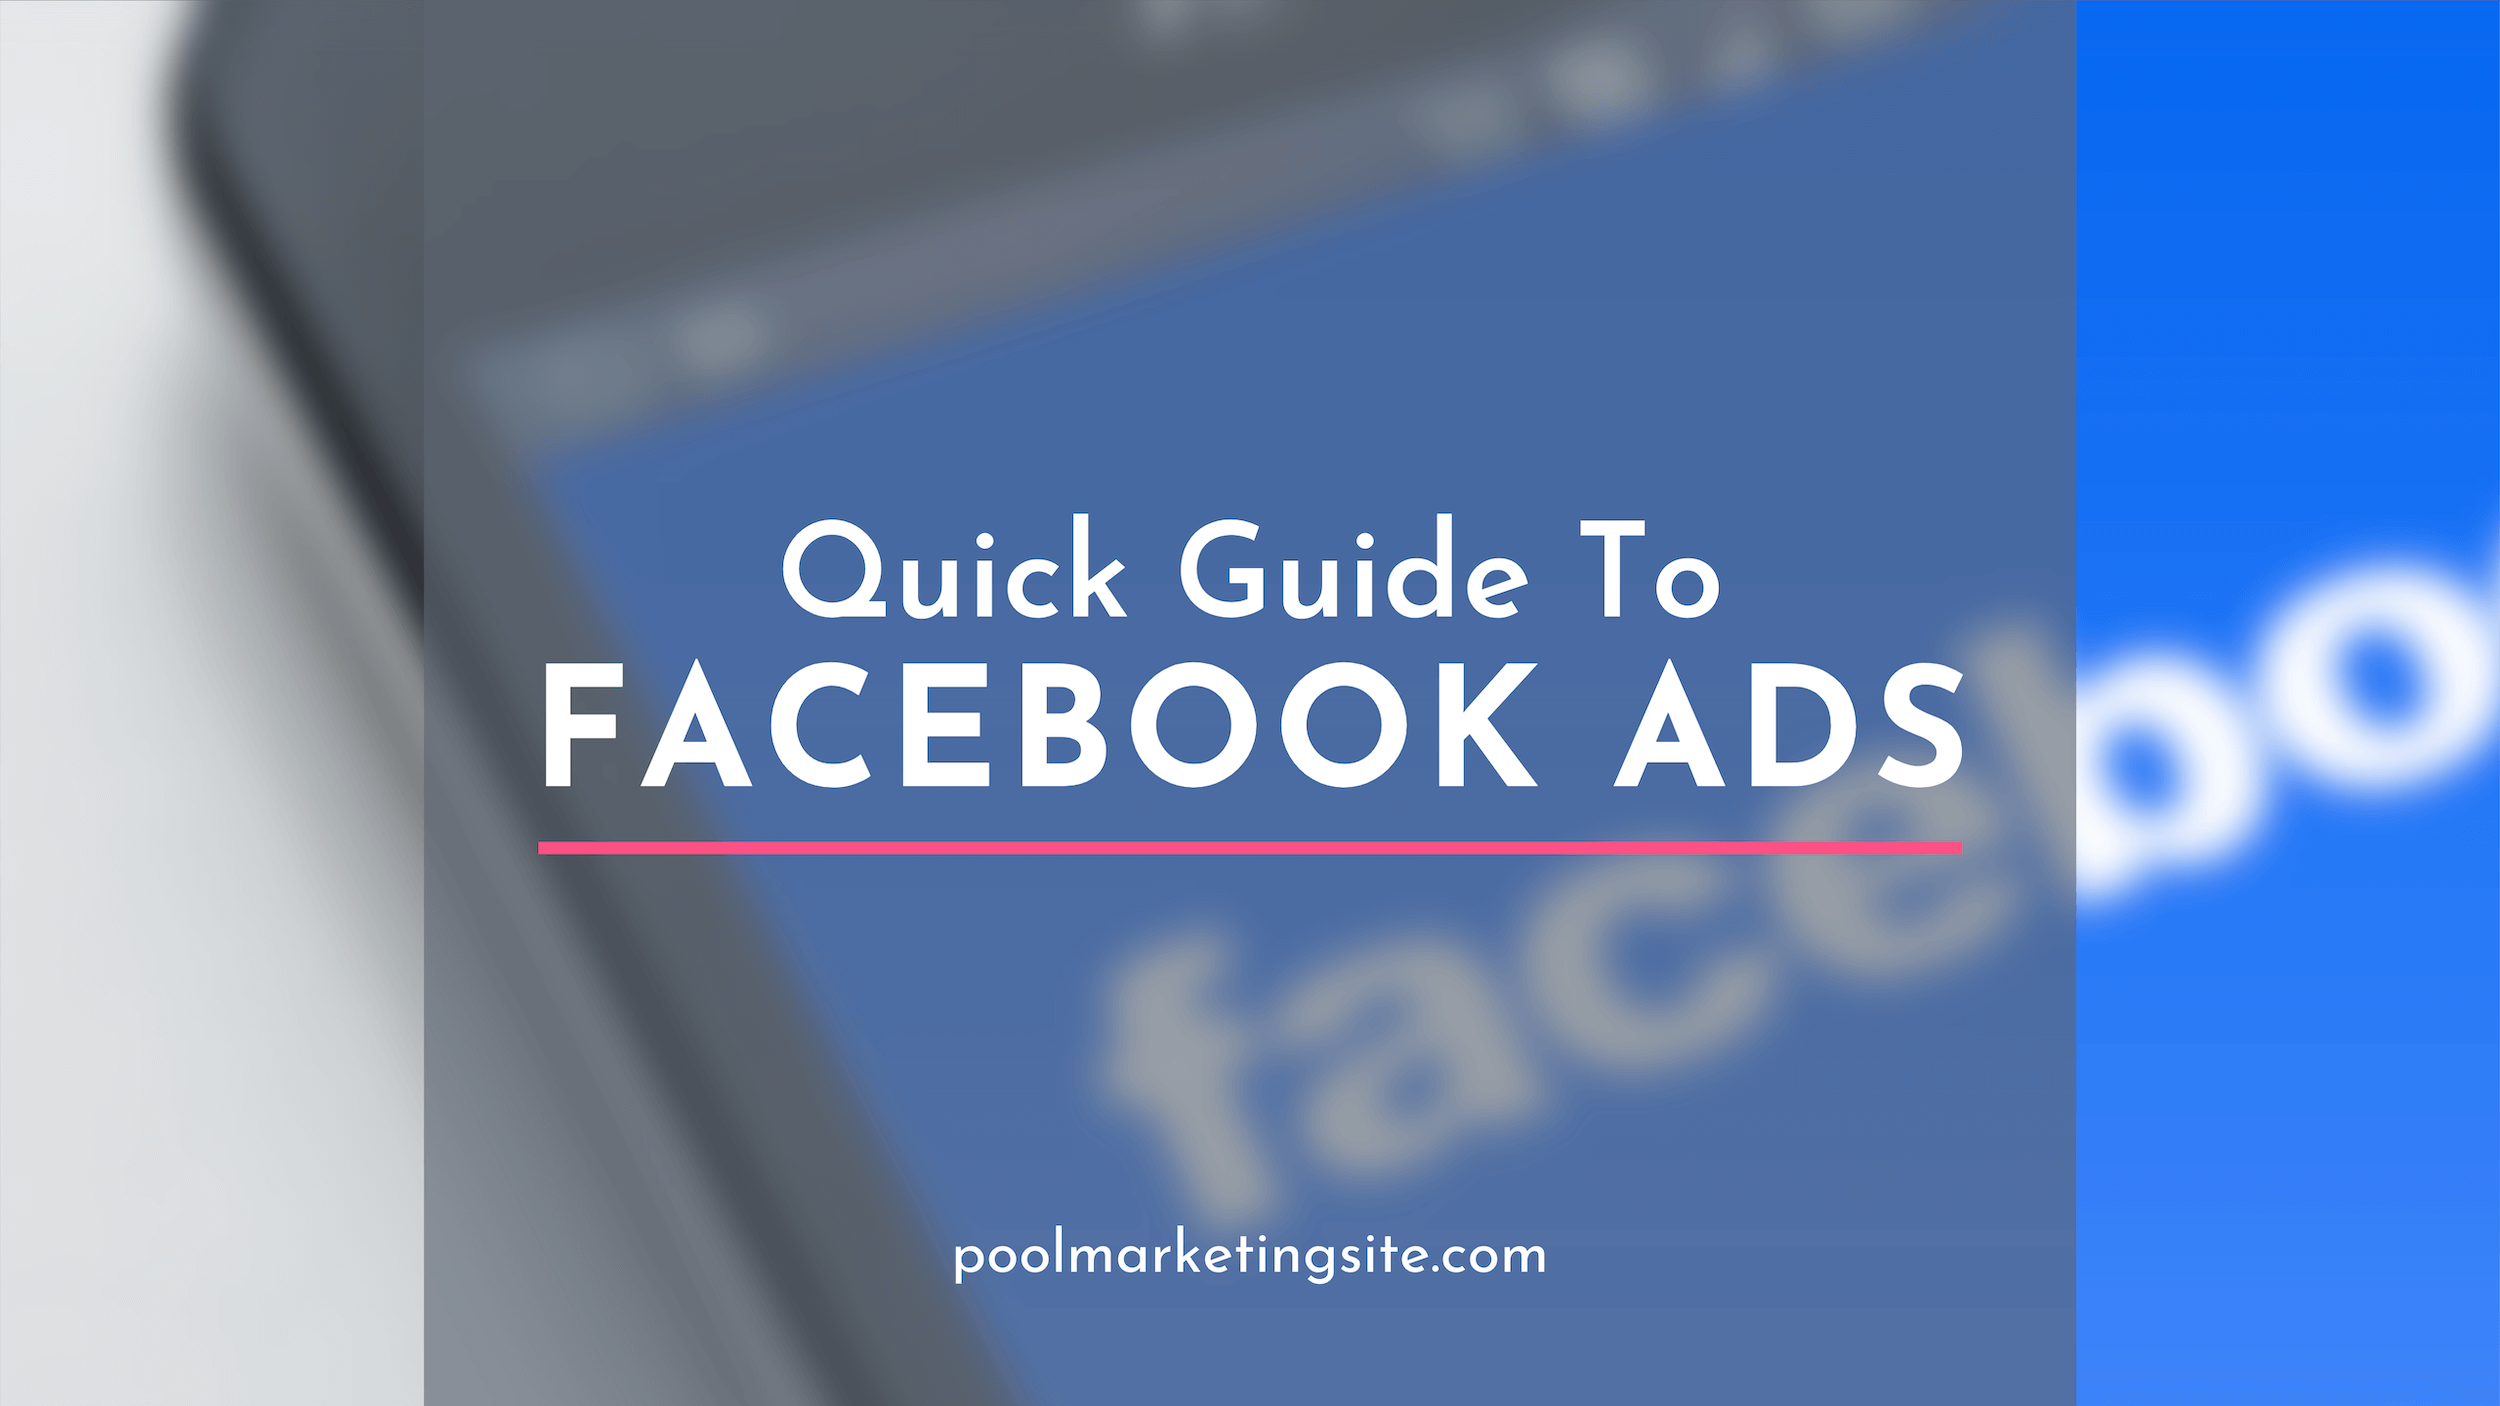 Quick Guide to Facebook Ads